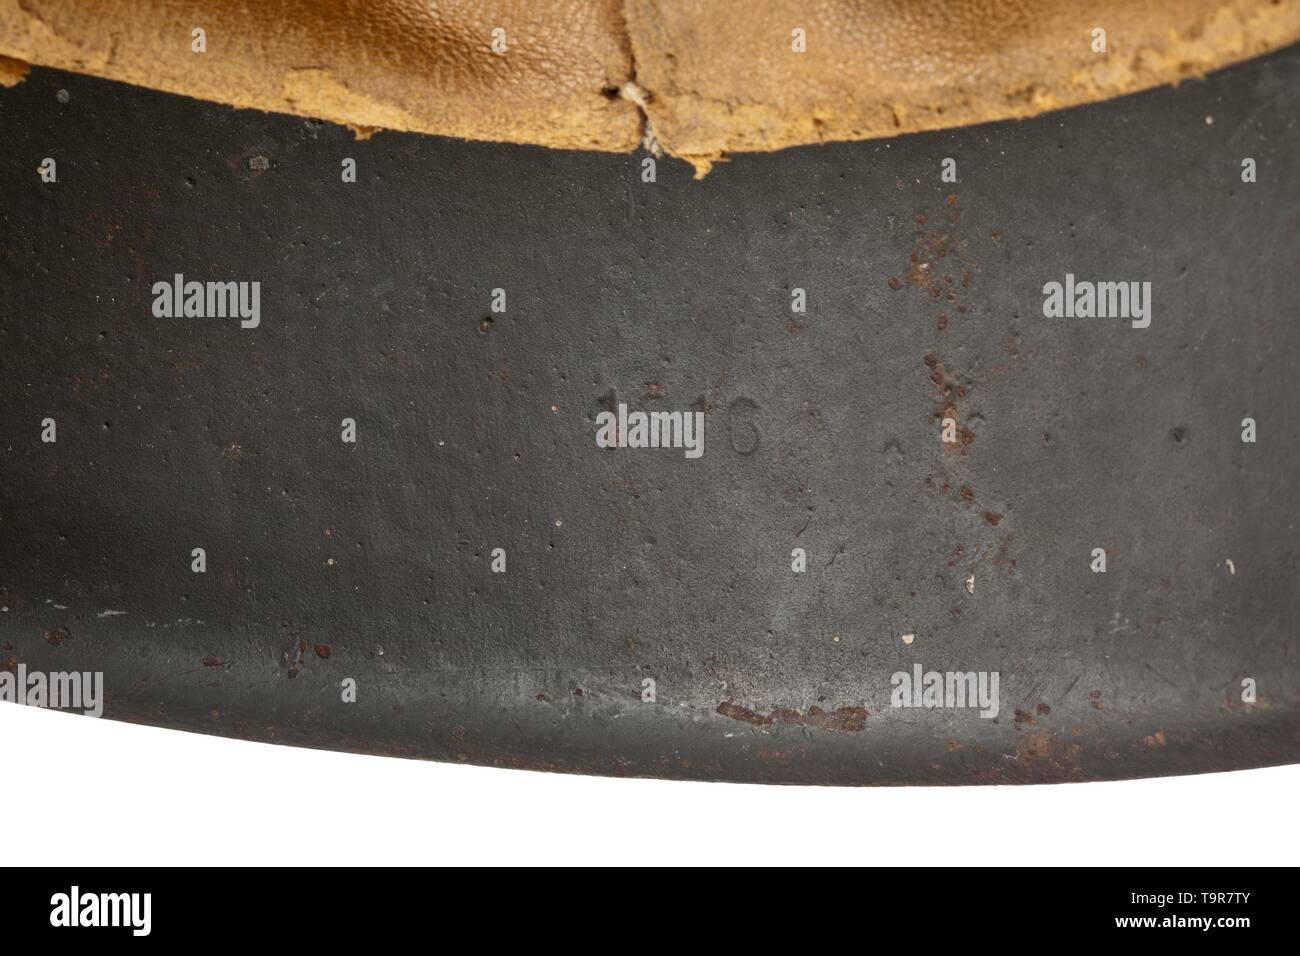 """A steel helmet M 40 for French foreign legion volunteers personal piece of """"Chef Lacomnie"""" Field-grey painted steel skull, the National emblem nearly intact, the French national shield contemporarily applied by hand, the interior with maker stamps """"ET66"""" and """"1616"""", acceptance stamp in the crest, complete inner liner with chinstrap and handwritten wearer's designation. An old inventory tag """"Collection Andre Thelot"""" is attached with designation of origin. historic, historical, army, armies, armed forces, military, militaria, object, objects, stills, clipping, clippings, cut , Editorial-Use-Only Stock Photo"""